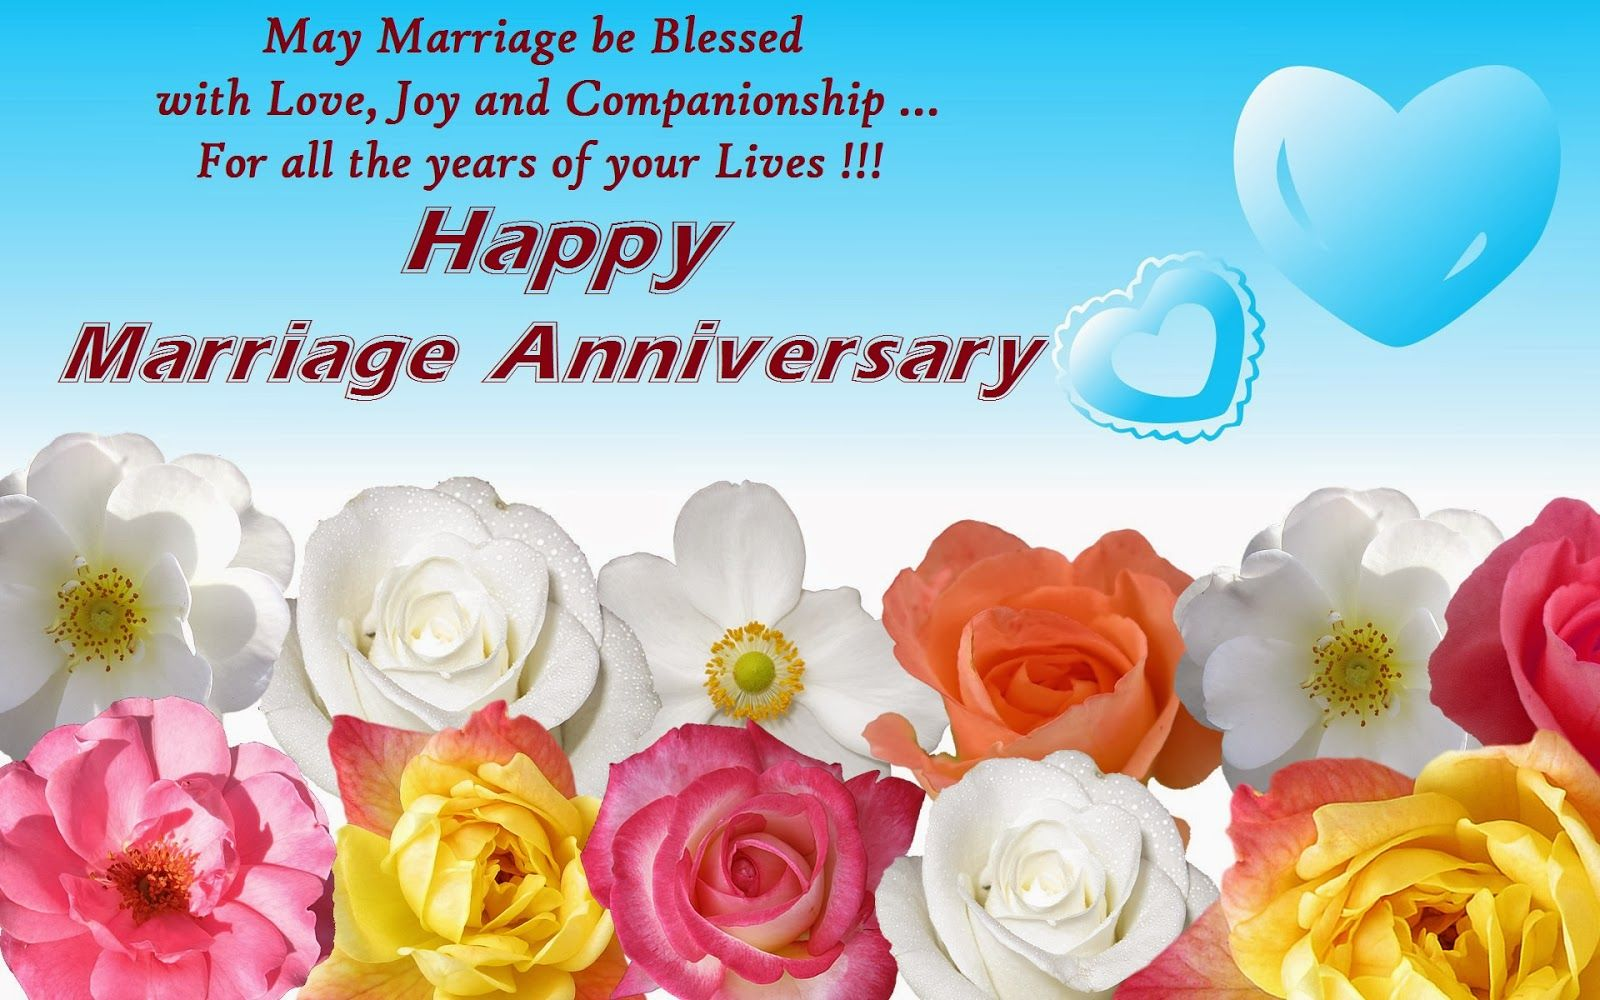 Happy Wedding Anniversary Wallpaper Hd Happy Marriage Anniversary